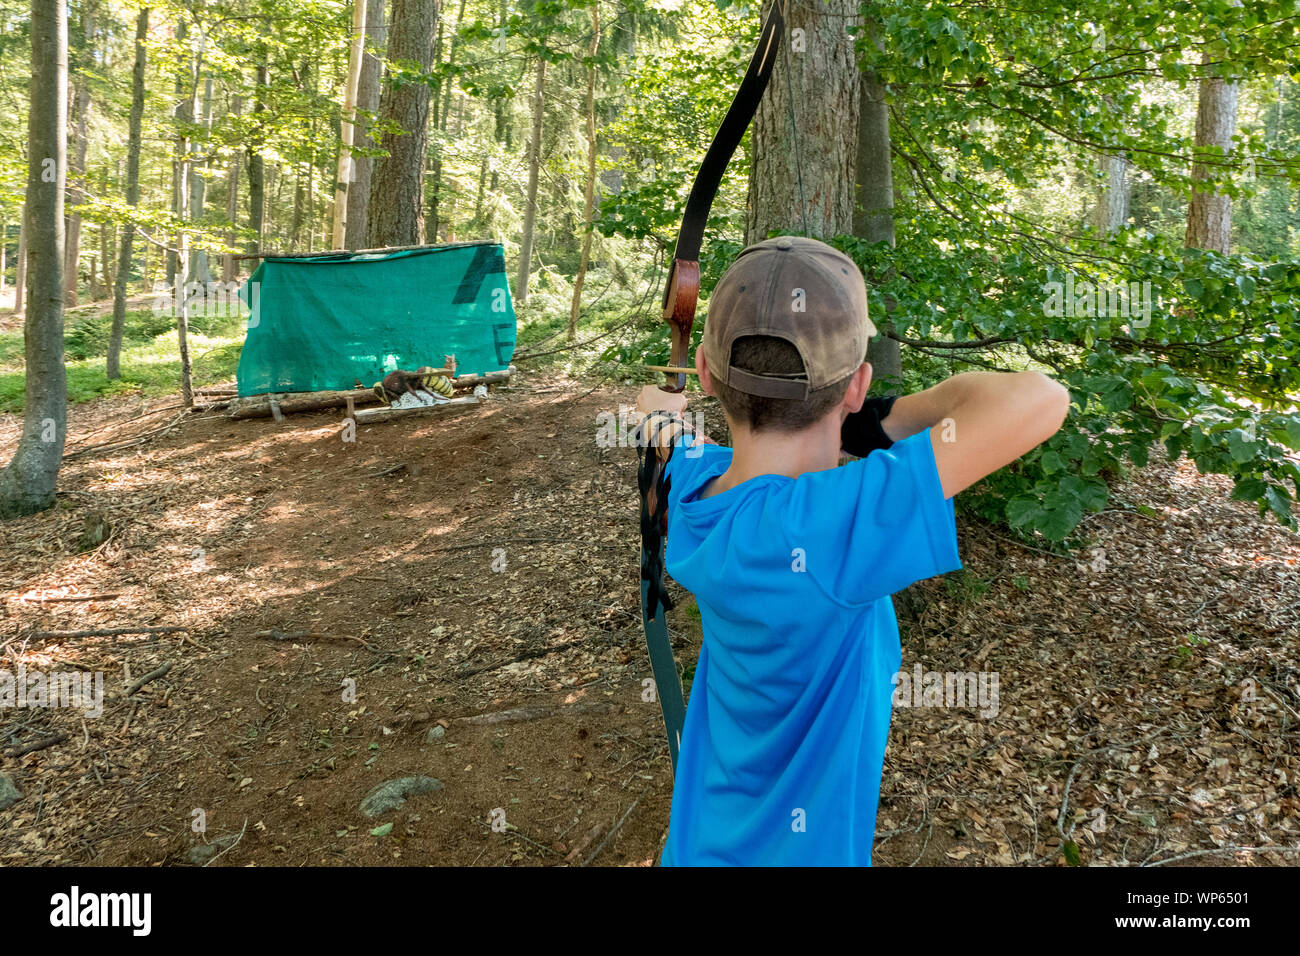 boy with cap and blue shirt shooting bow Stock Photo